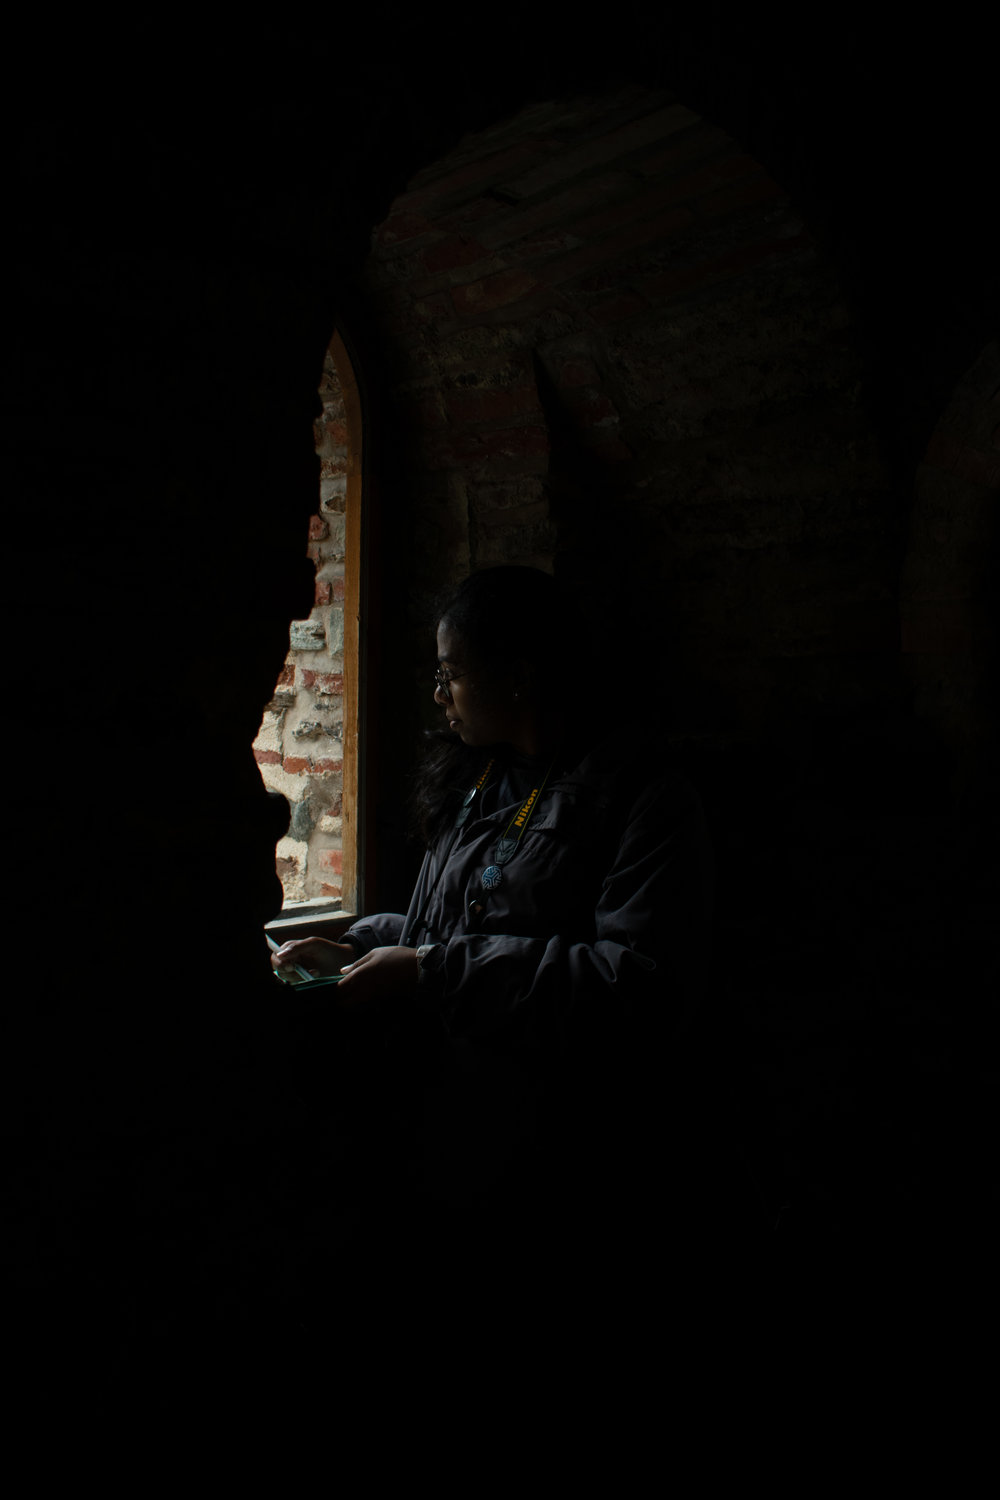 window-light-silhouette-contemplation-alone-church-uthra-rila-monastery-bulgaria-southloop-phototour-gopika-2018-DSC0304.jpg